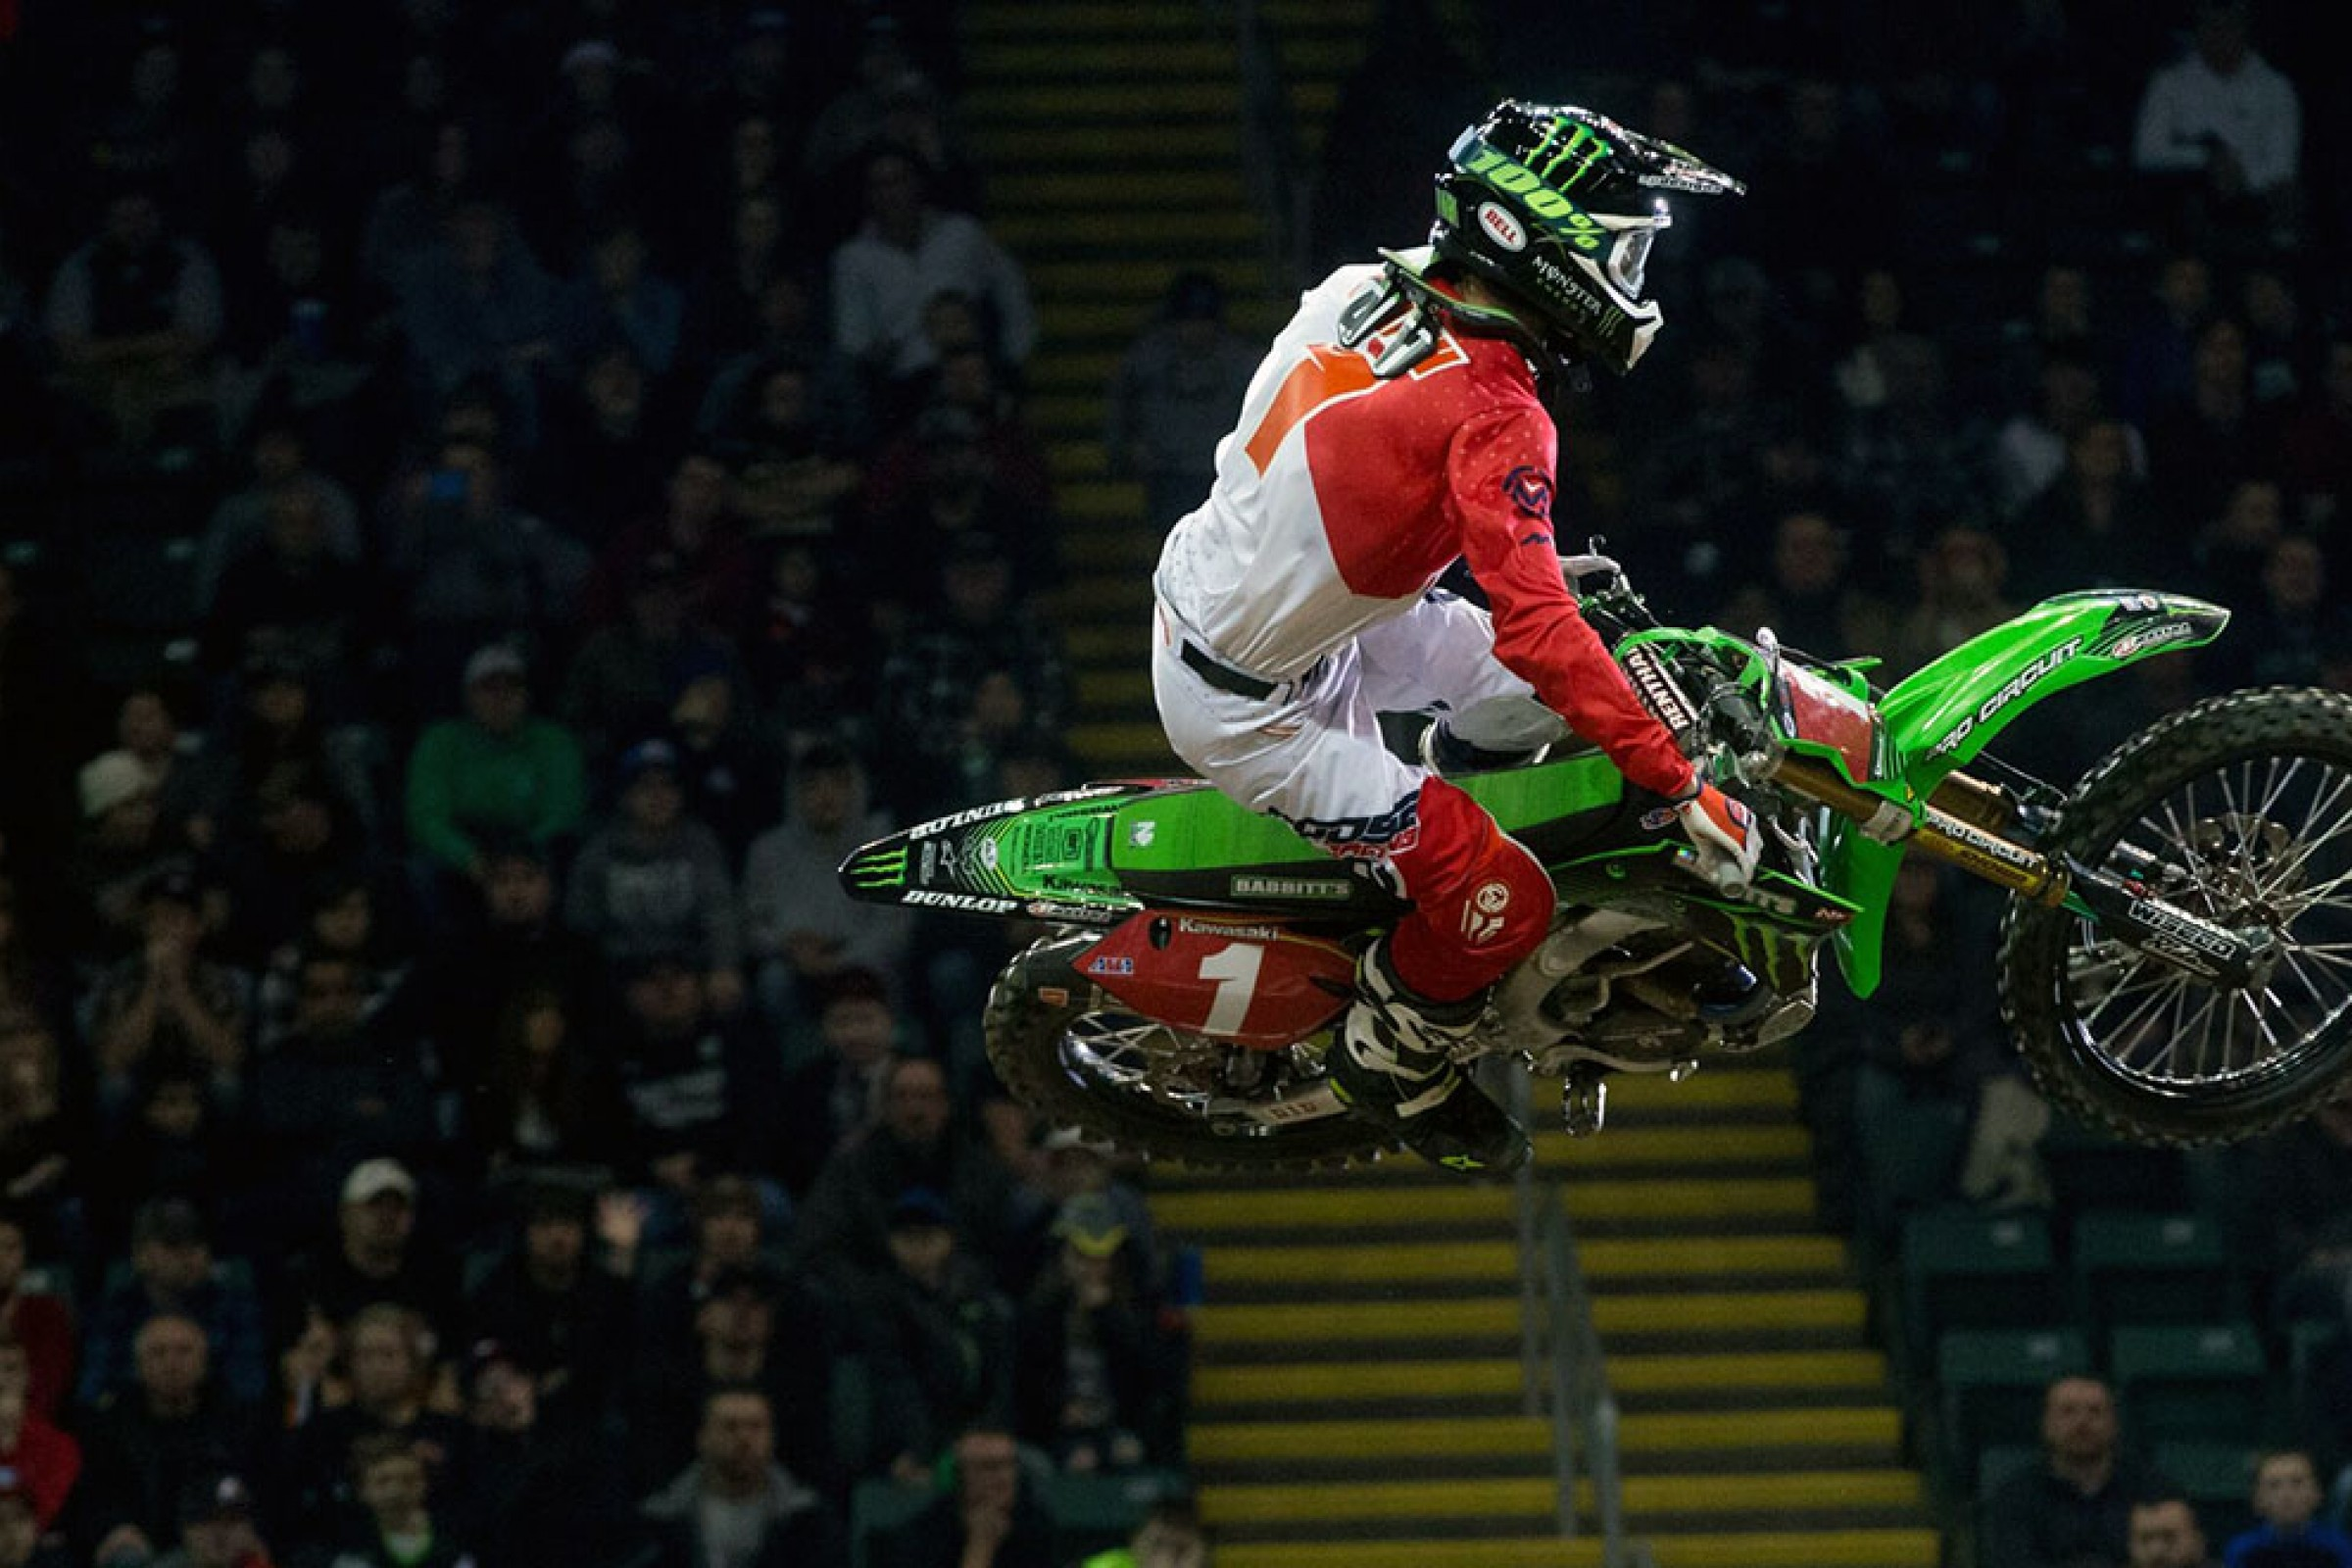 Gavin Faith Wins Round 2 of Amsoil Arenacross